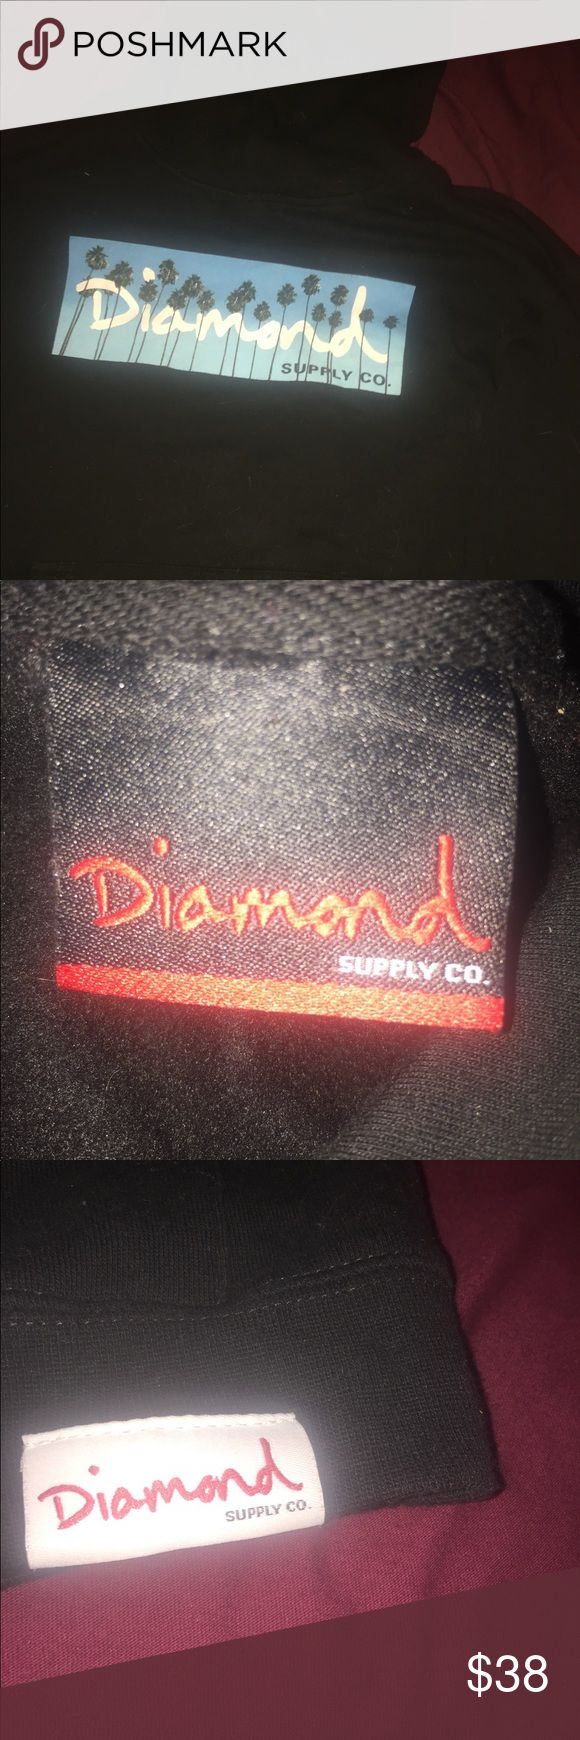 Diamond Supply Co Hoodie Like new! Fits like a Women's Medium/Large. Or a Men's Small! Feel free to ask questions! Diamond Supply Co. Jackets & Coats